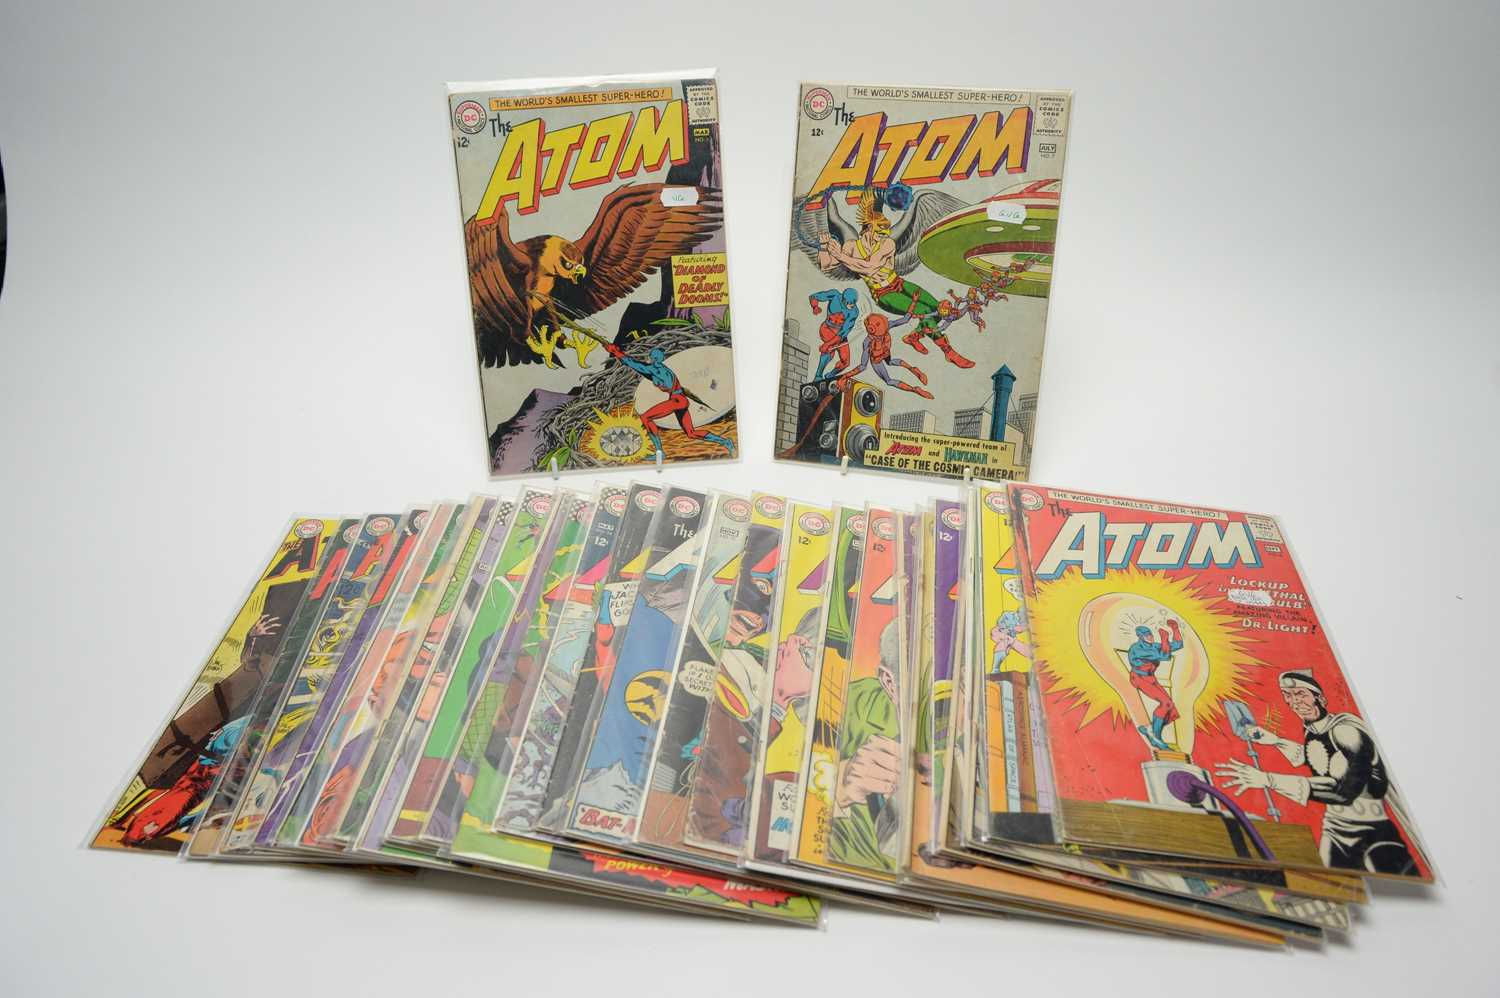 Lot 43 - The Atom by DC.